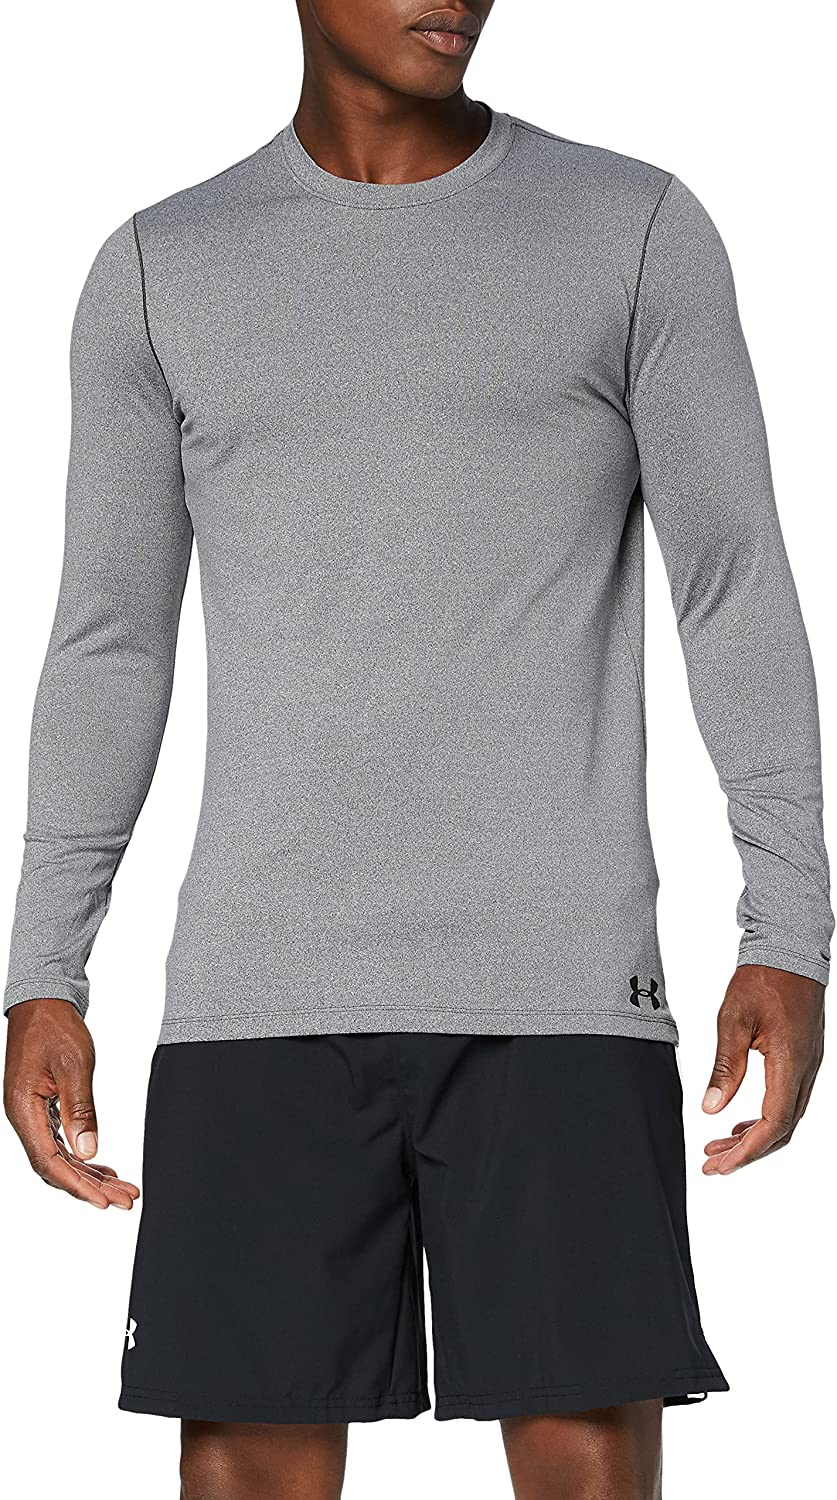 Under Armour Men's ColdGear Fitted Long Sleeve Crew 67% OFF of store fixed price T-Shirt